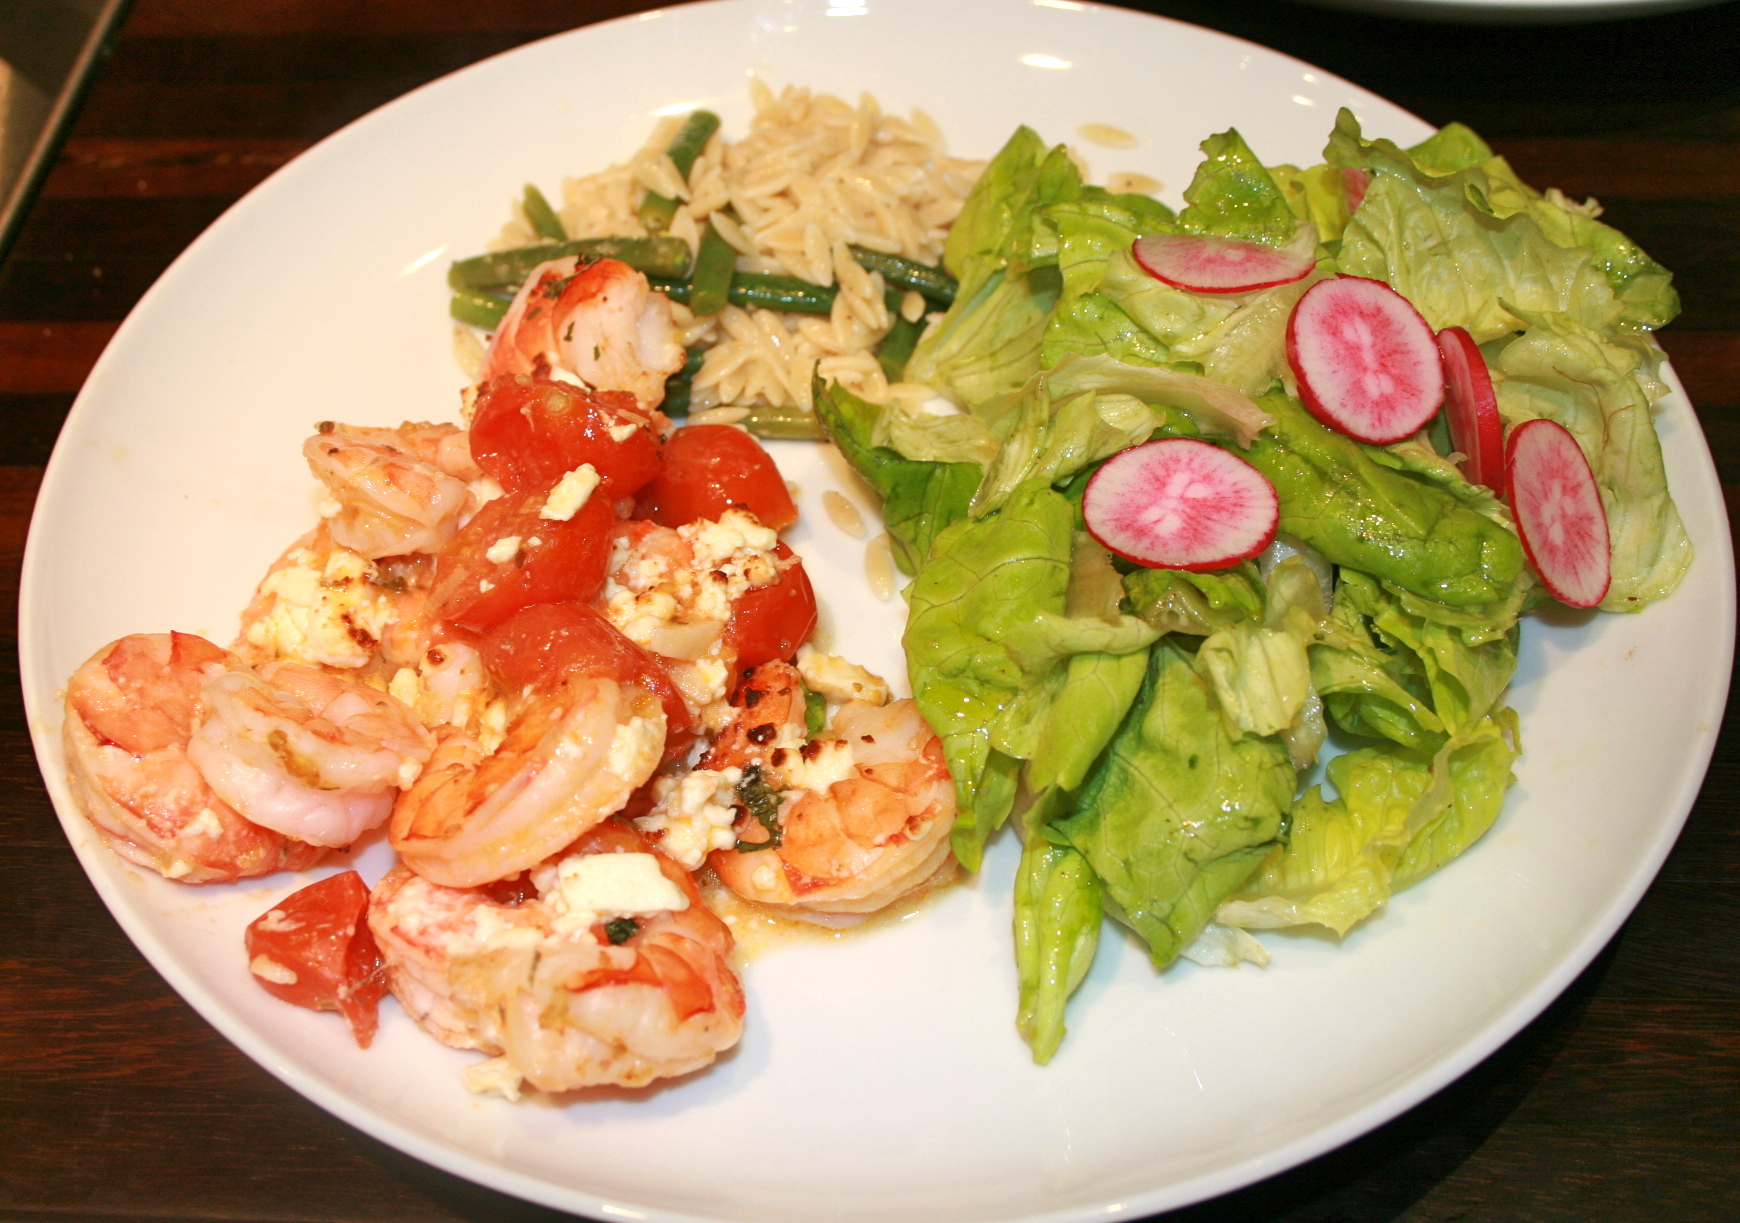 Baked Shrimp With Tomato and Feta at www.ahealthylifeforme.com